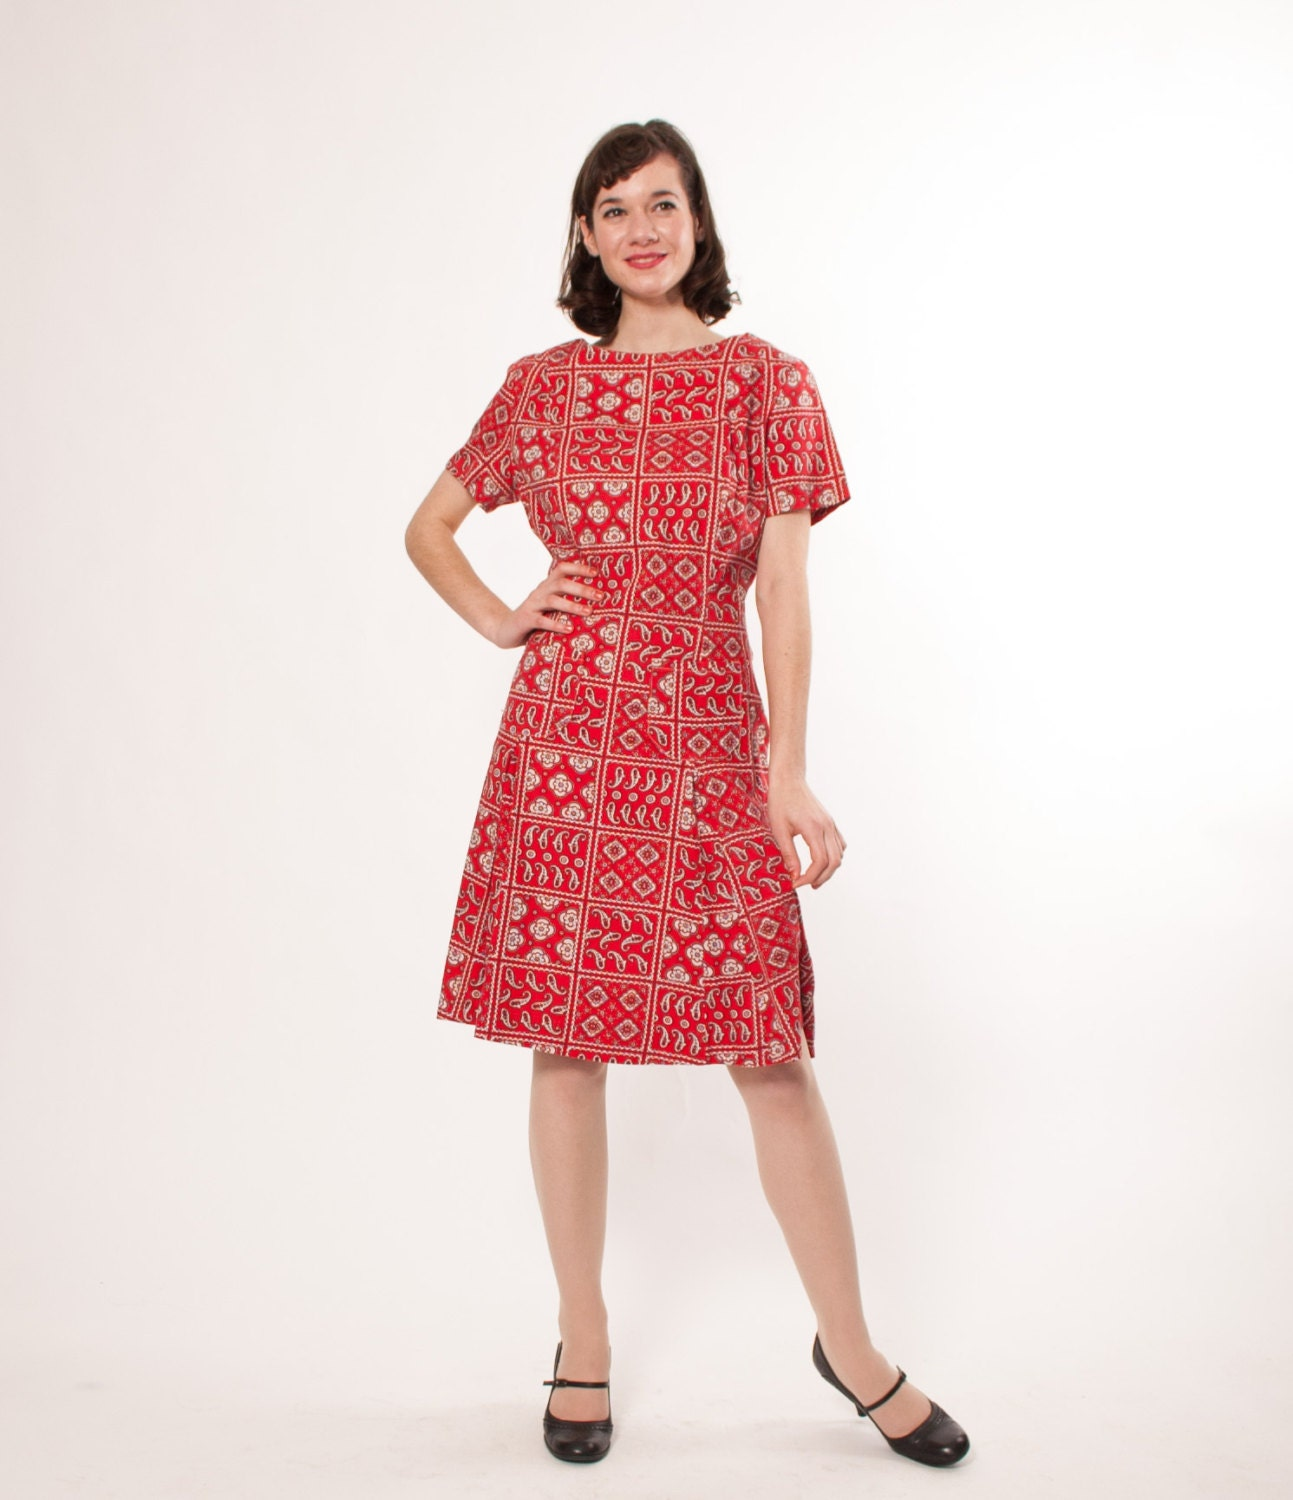 1960s Dress - 60s Shift Dress - Red & White Paisley - concettascloset